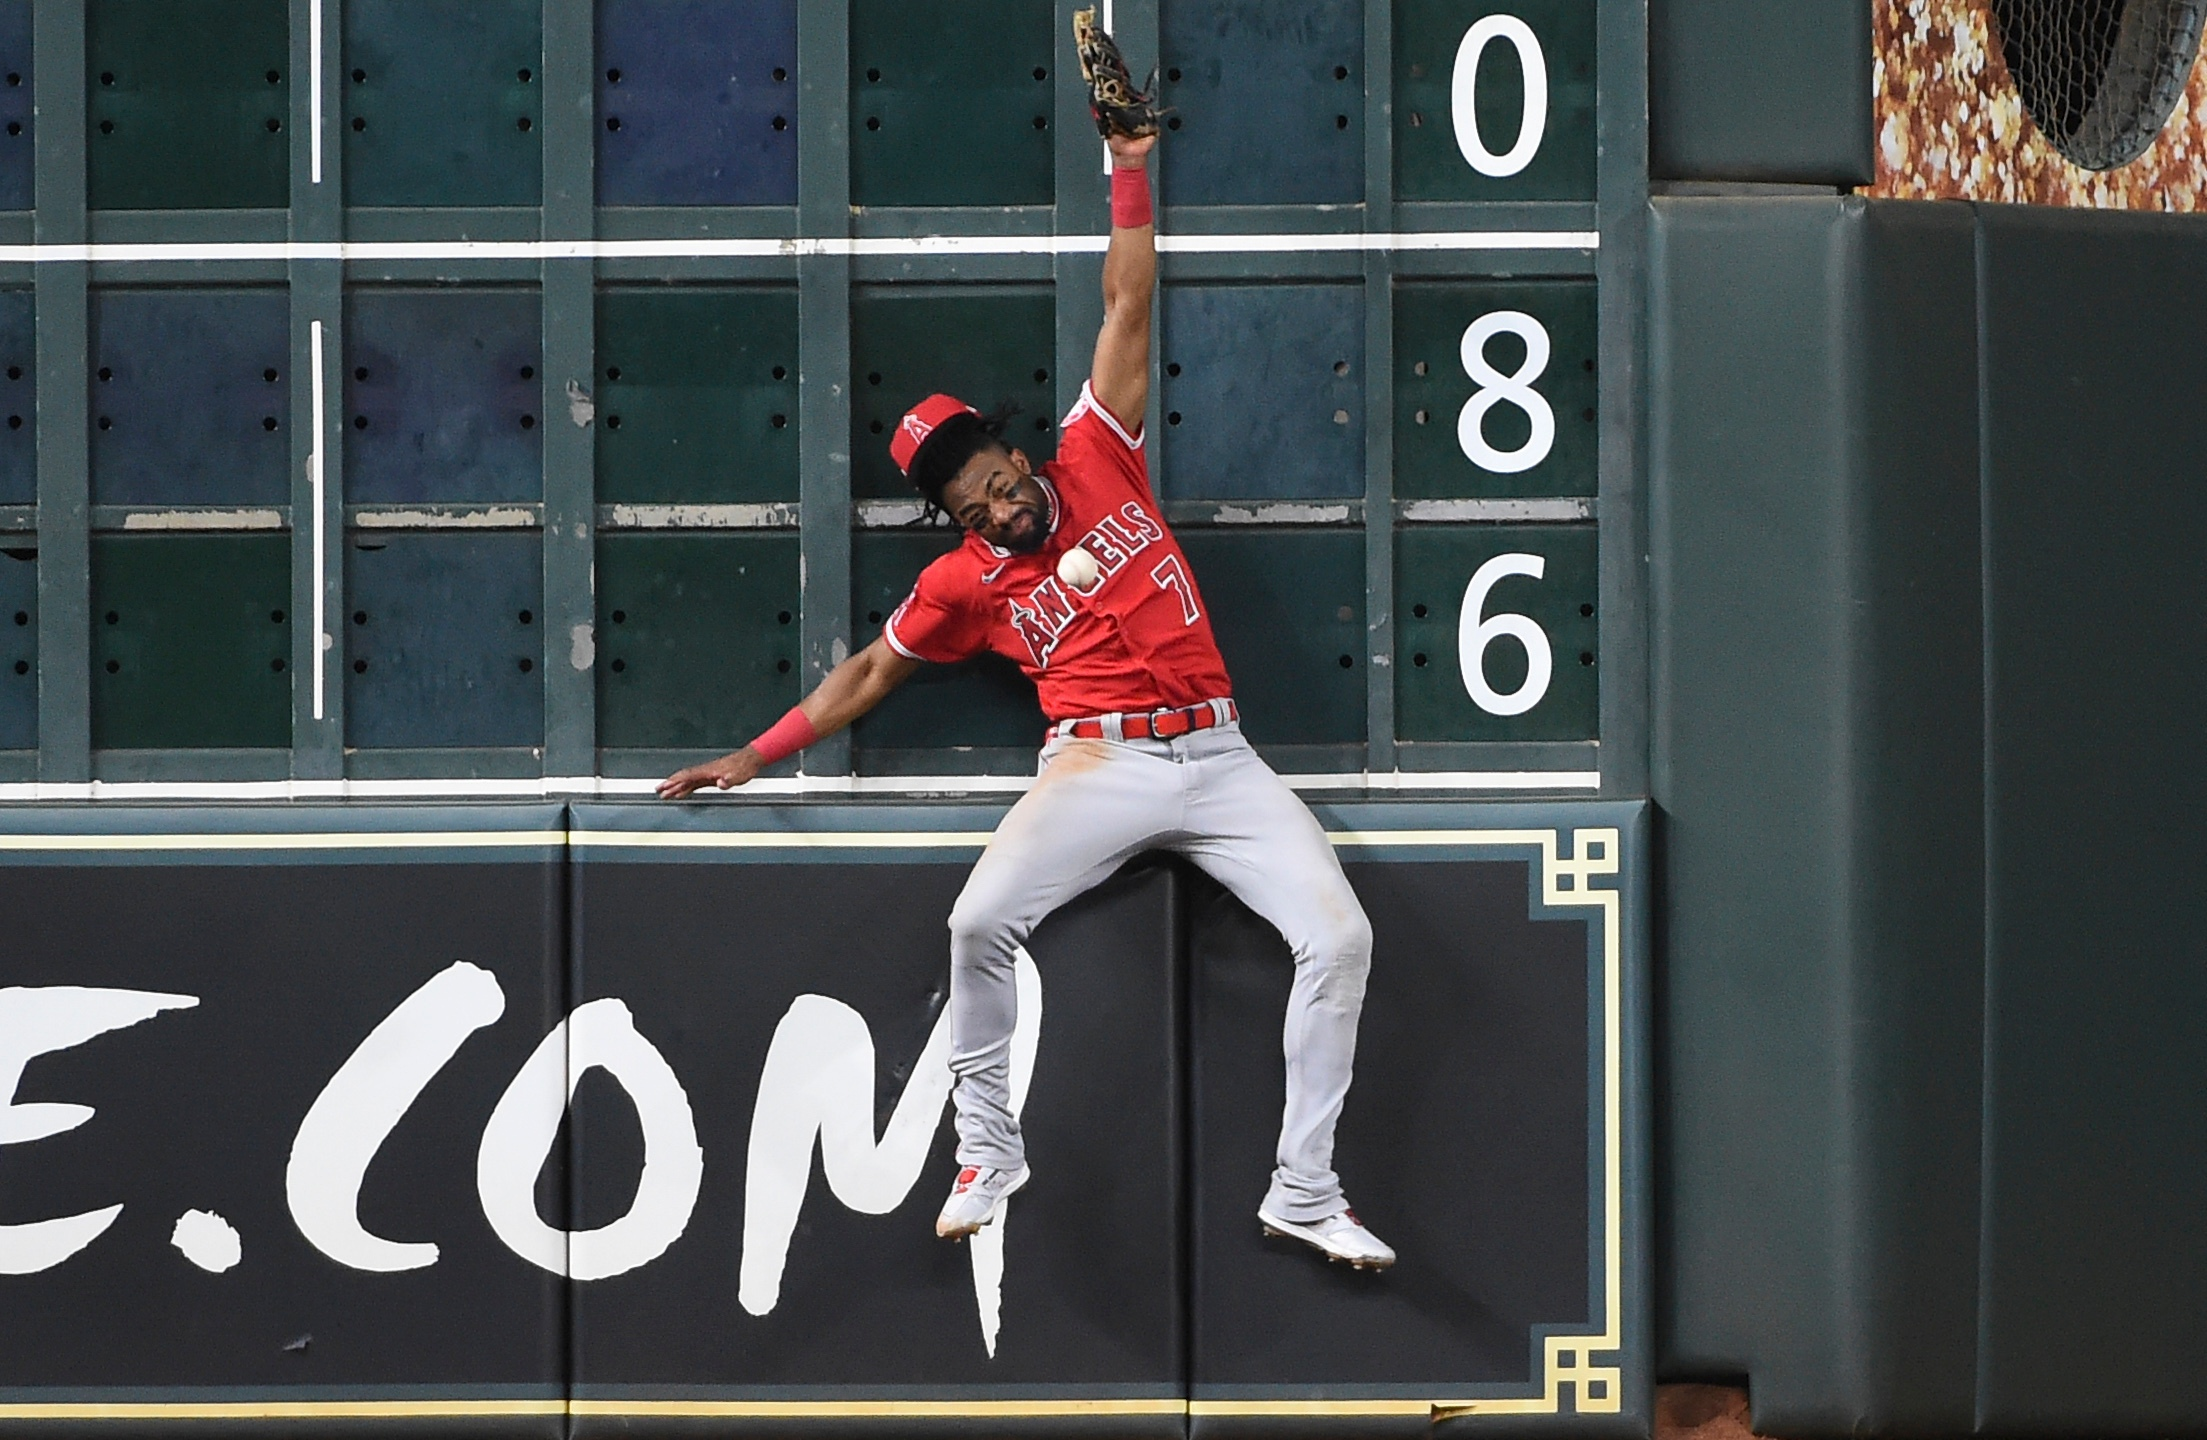 Jo Adell, player here